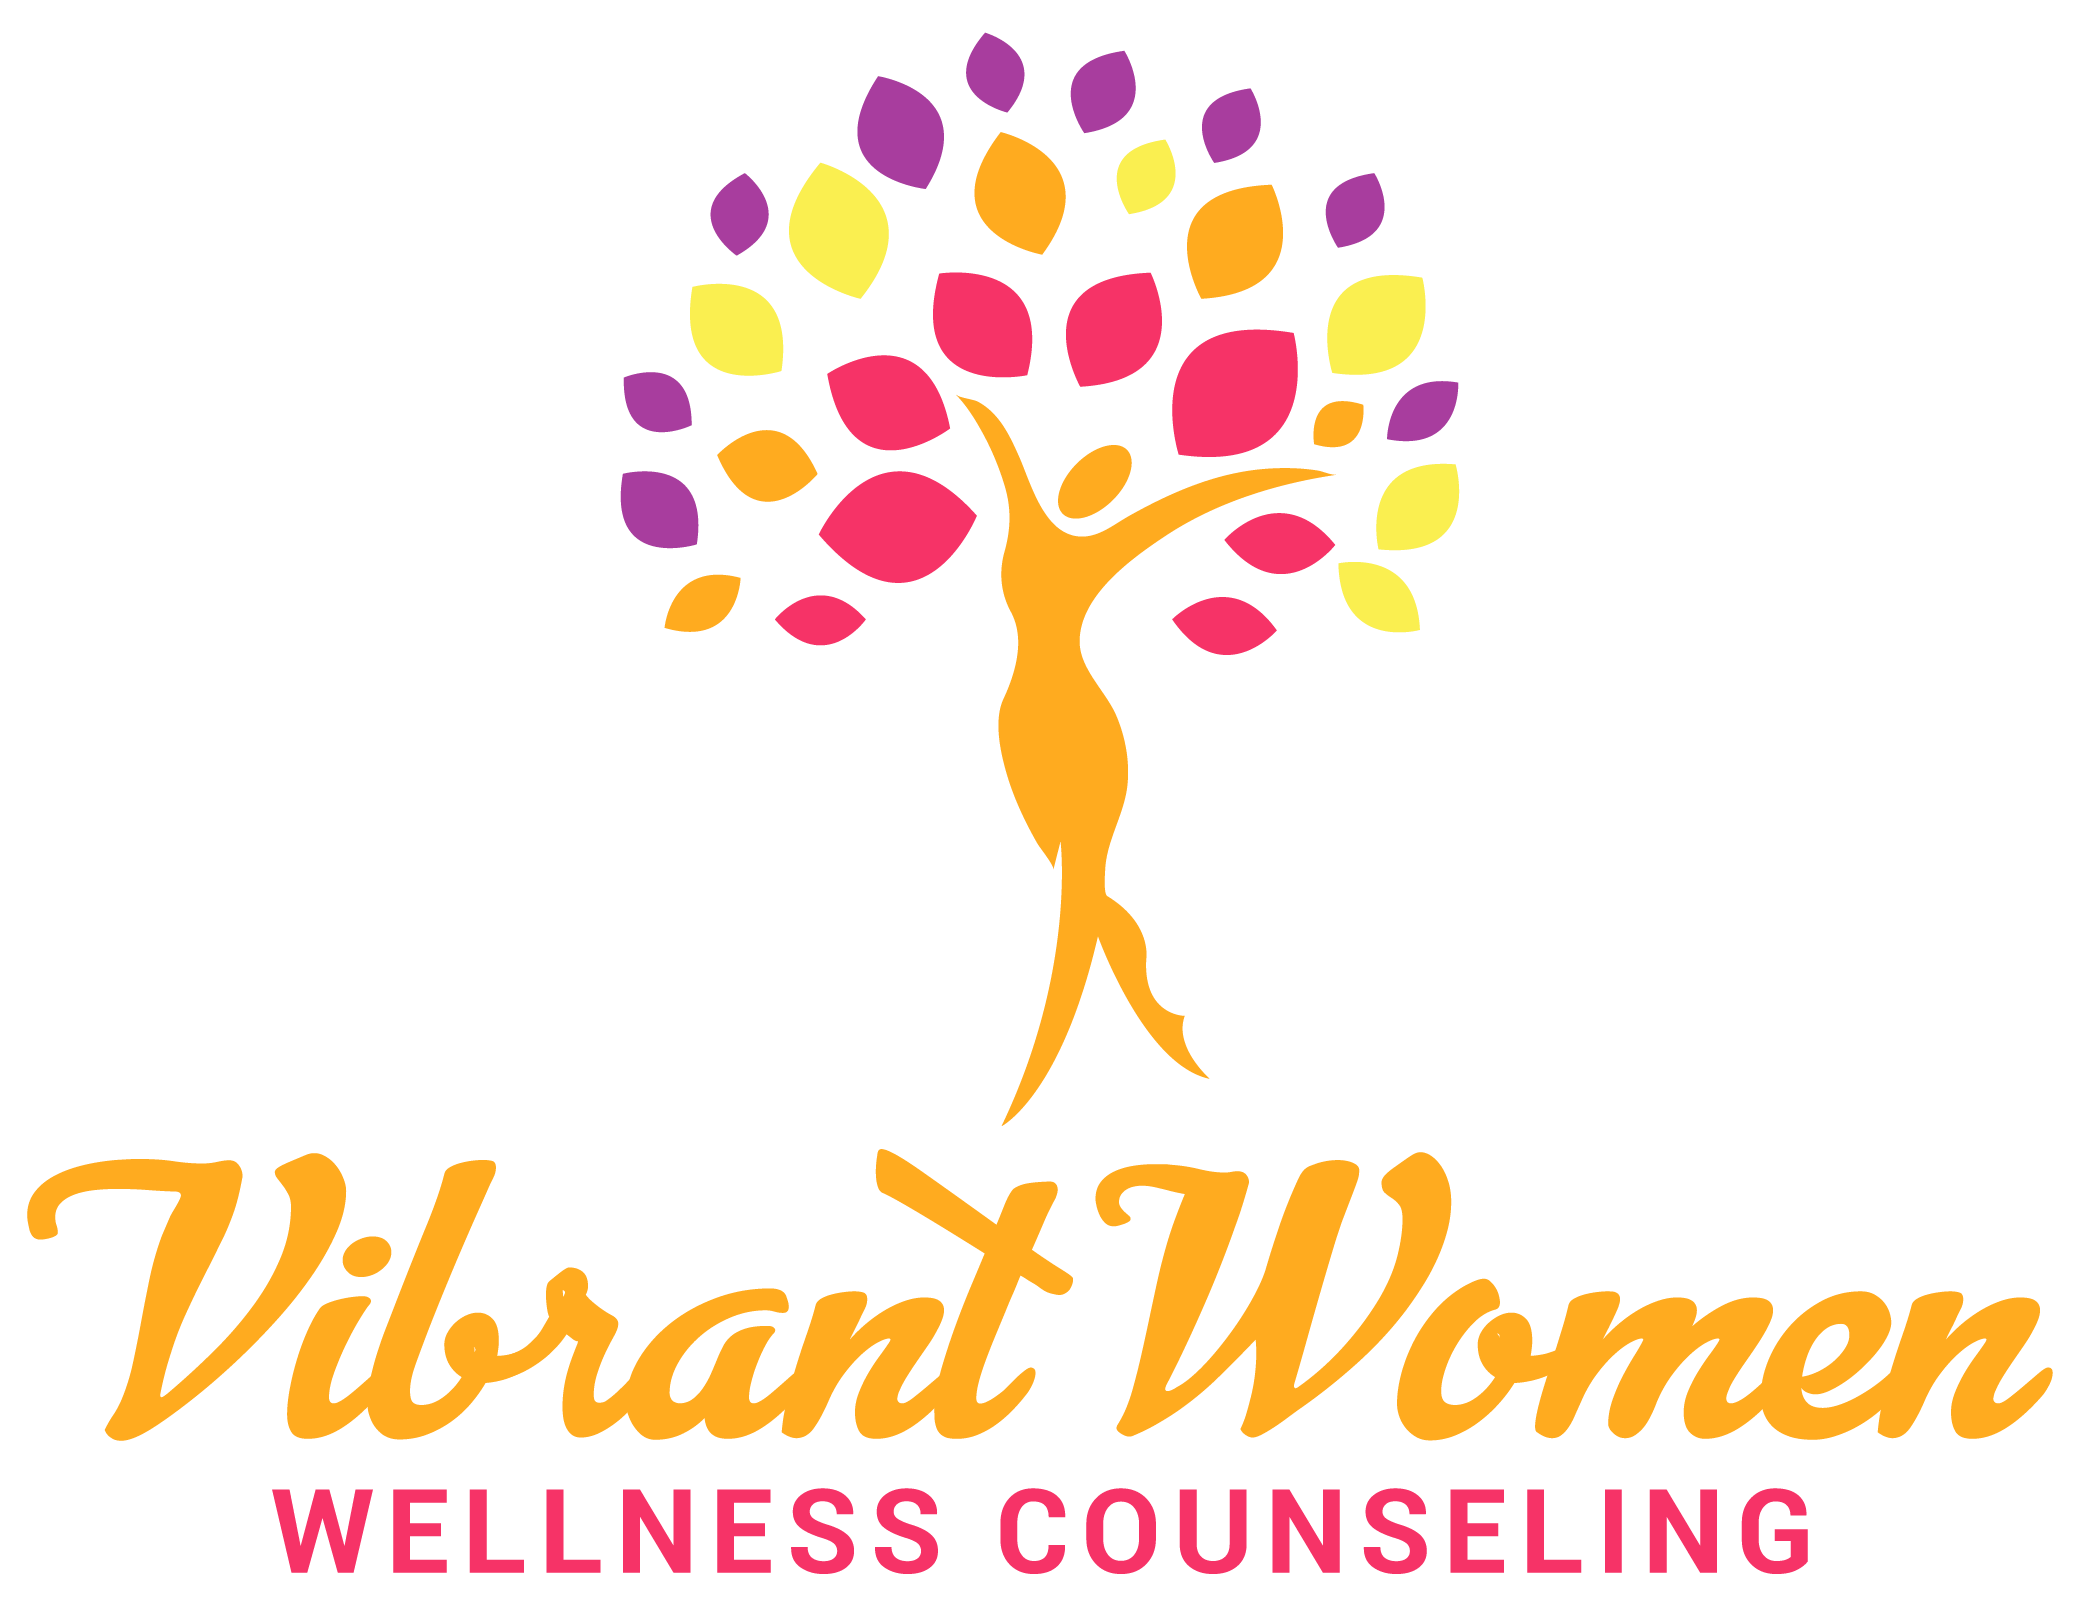 Vibrant Women Wellness Counseling